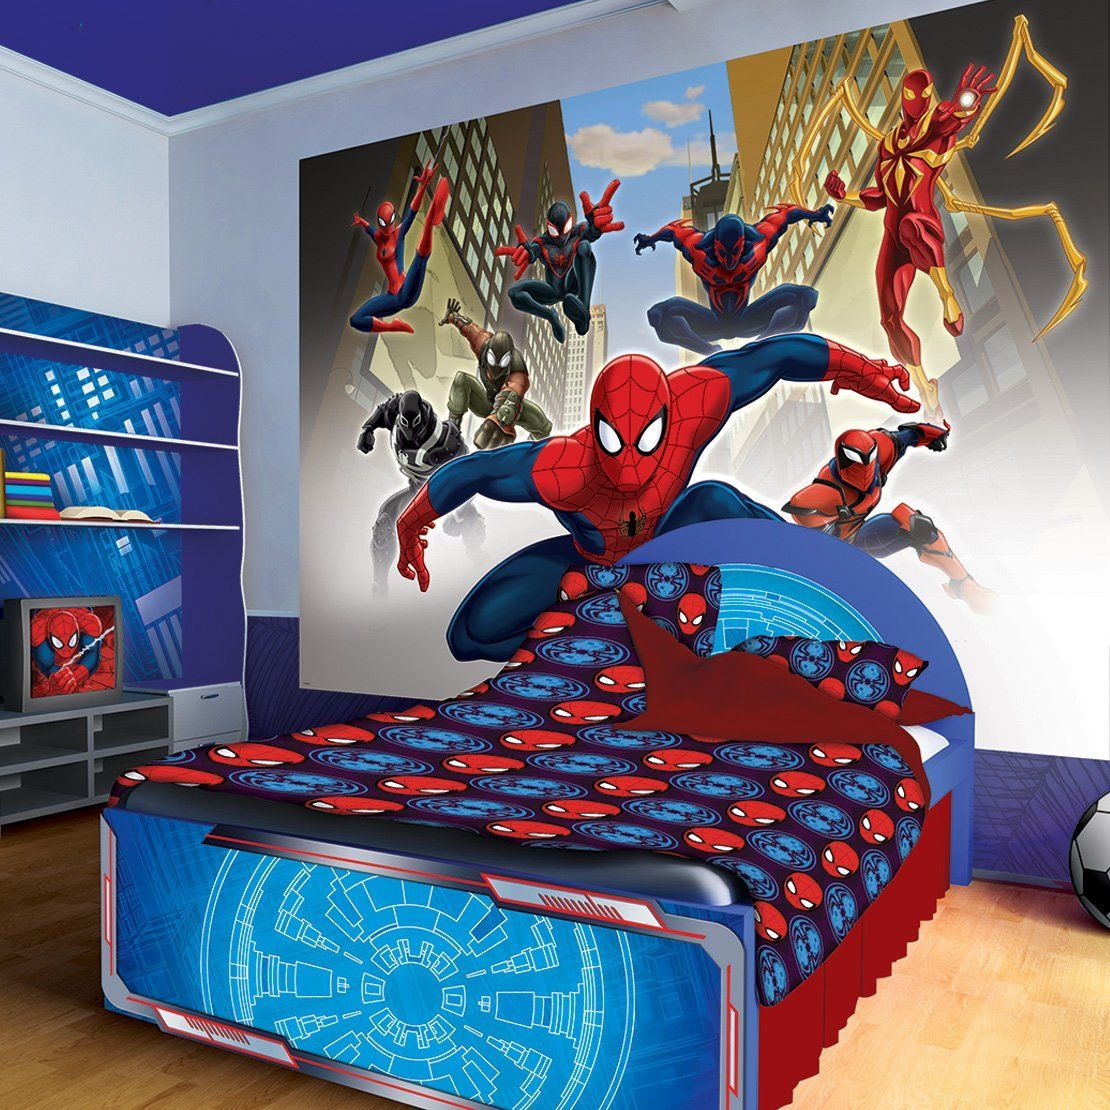 Spiderman Marvel Wall Mural Ideas For Kids Boys Bedroom Wall Decoration 1565 Anoninterior Spiderman Room Kids Room Wallpaper Spiderman Room Decor